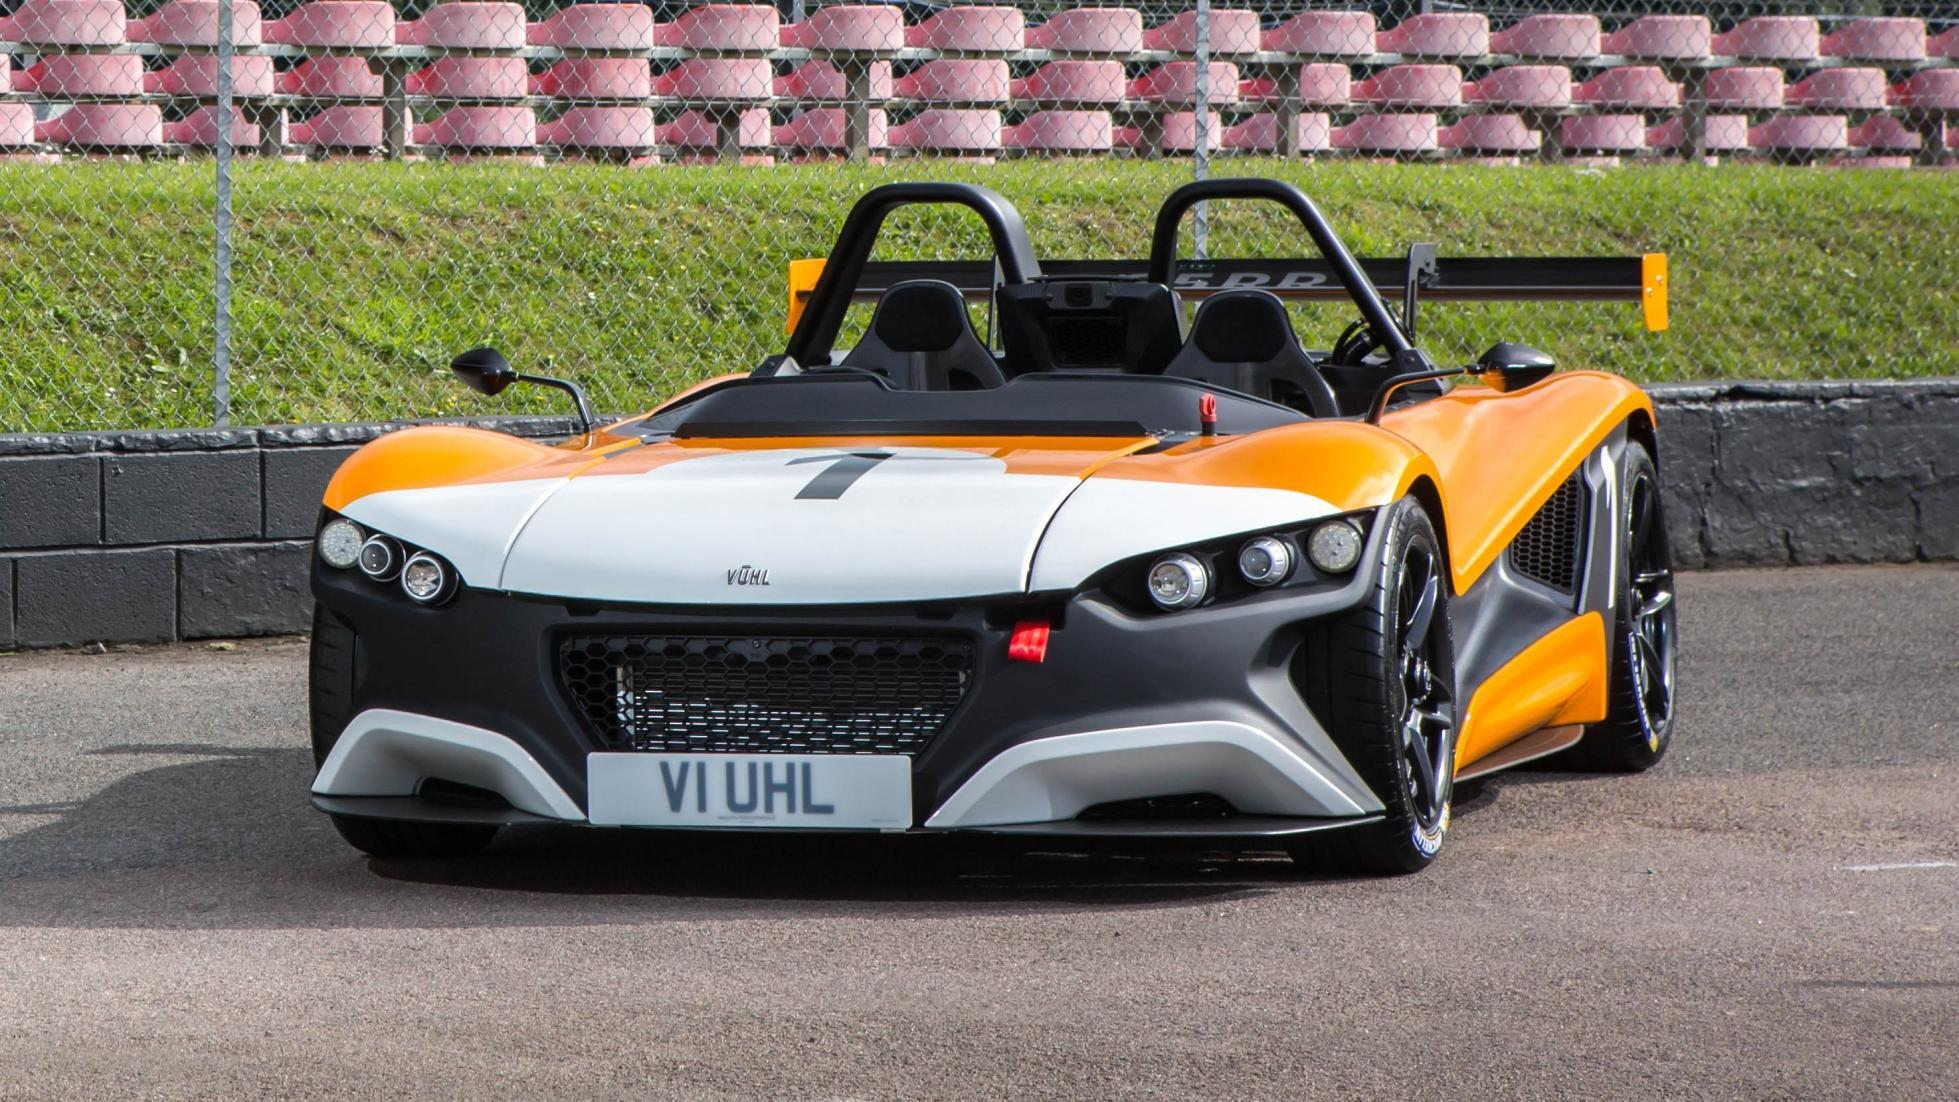 The New Vuhl 05rr Is Bugatti Veyron Fast Car News Bbc Topgear